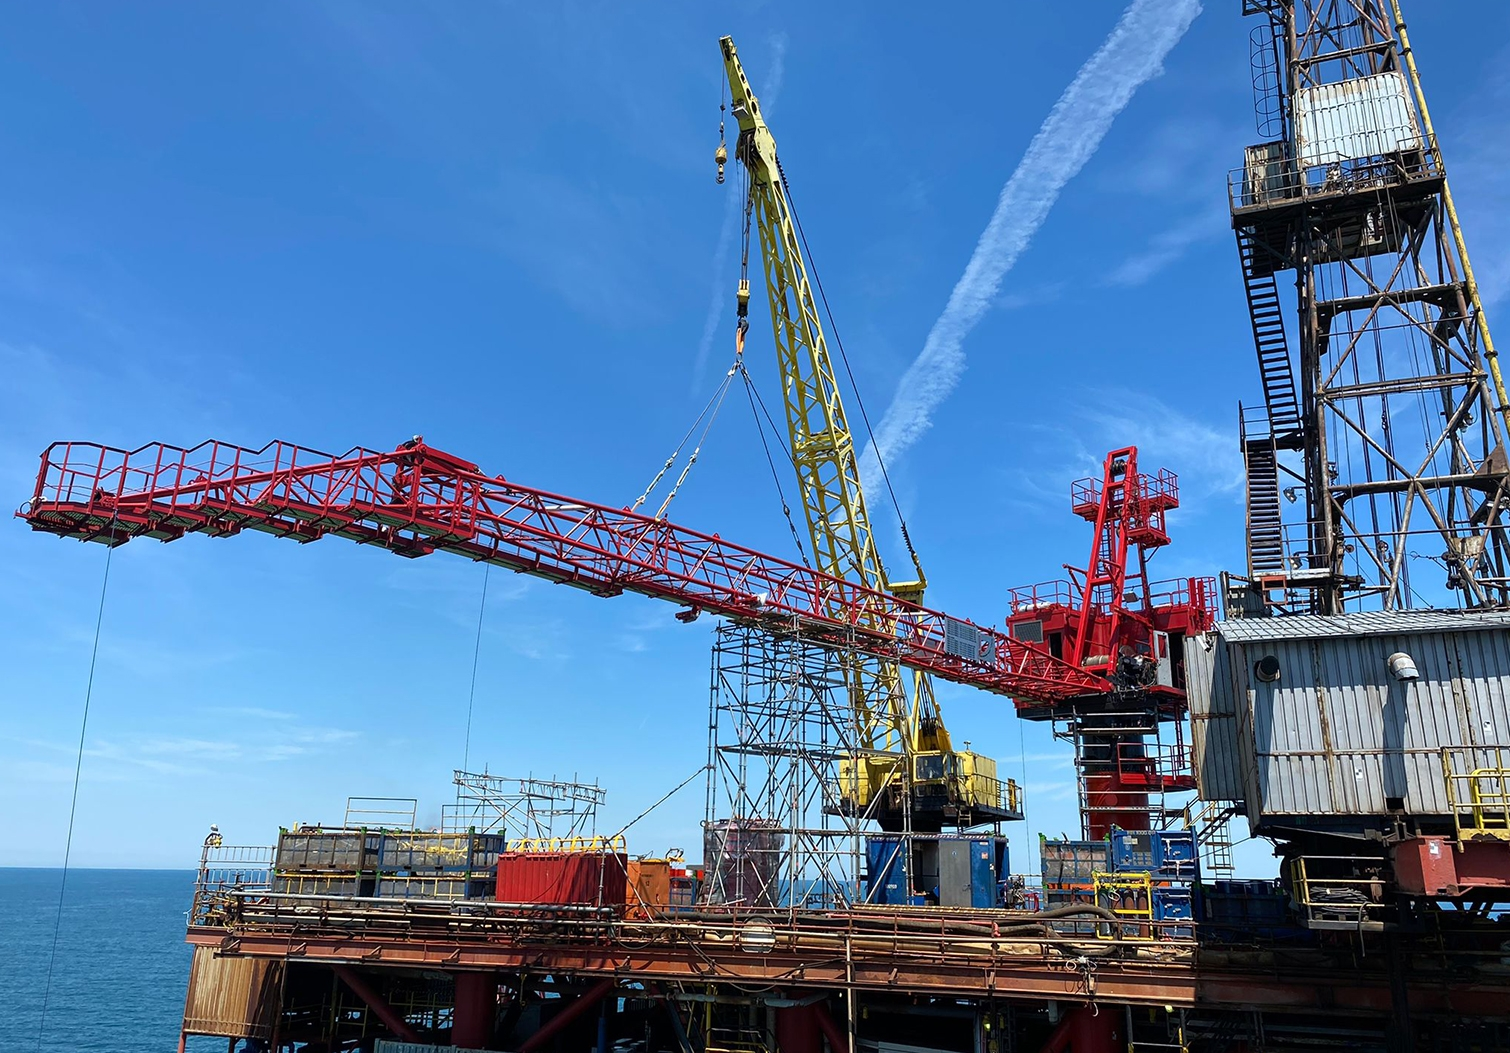 Innovo's sustained focus on safety and reliability achieves 3-years LTI-free on offshore crane project